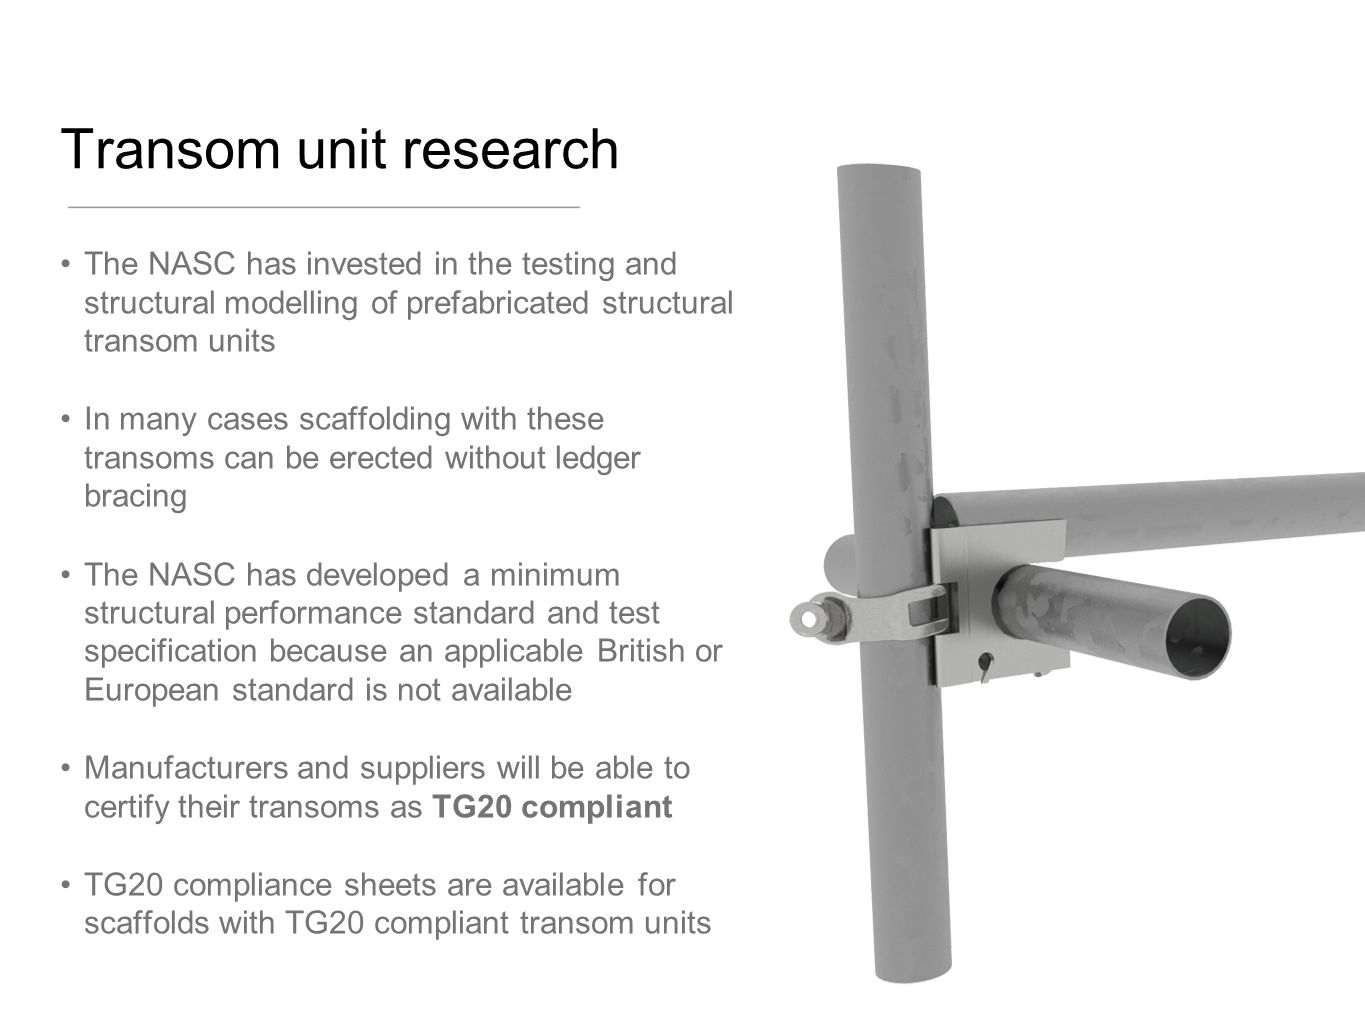 Transom unit research The NASC has invested in the testing and structural modelling of prefabricated structural transom units.